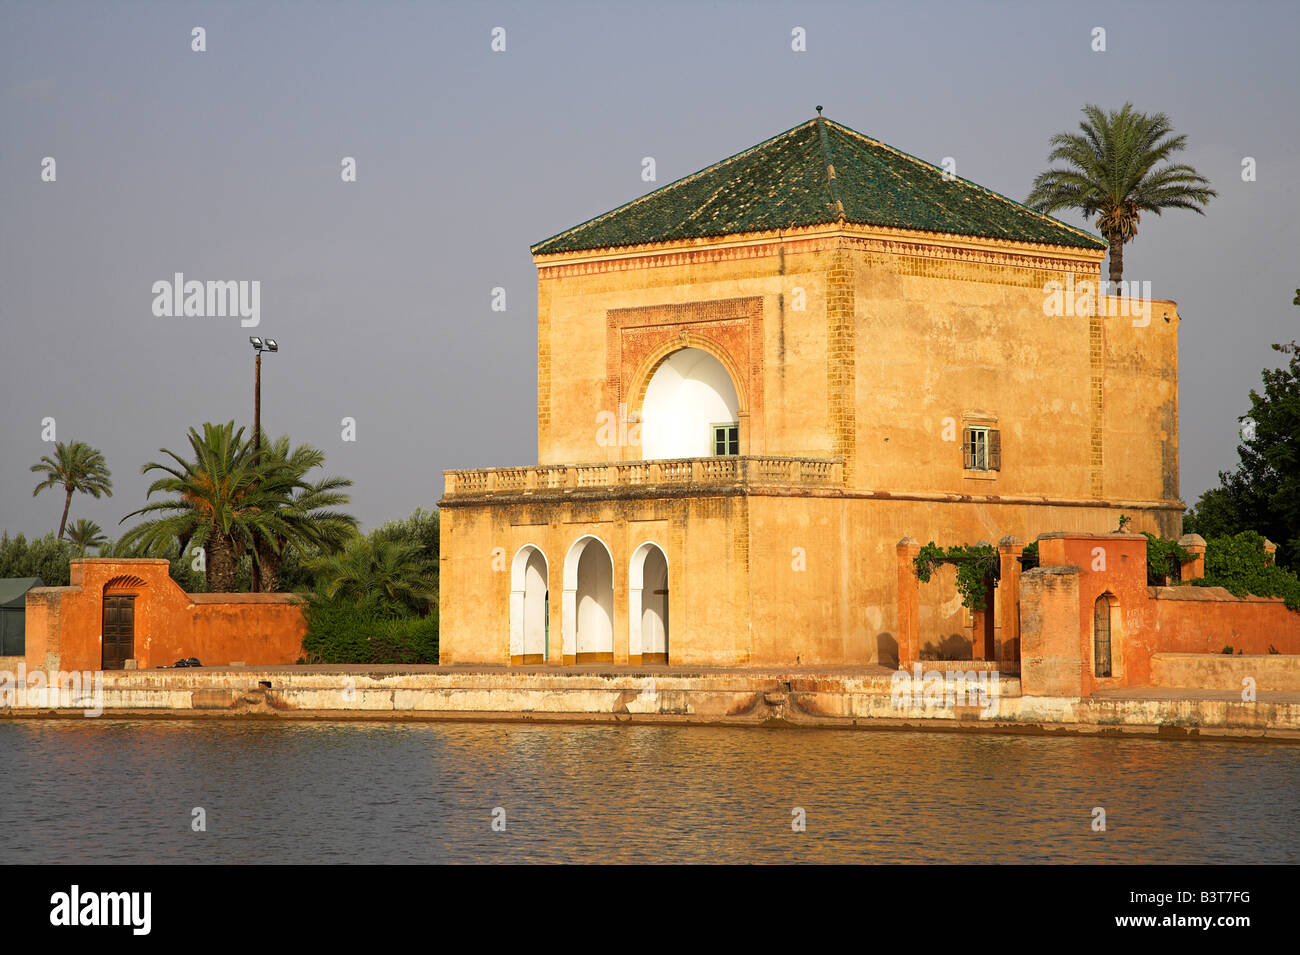 Morocco The Jardin Menara Provides A Peaceful Haven On The Edge Of